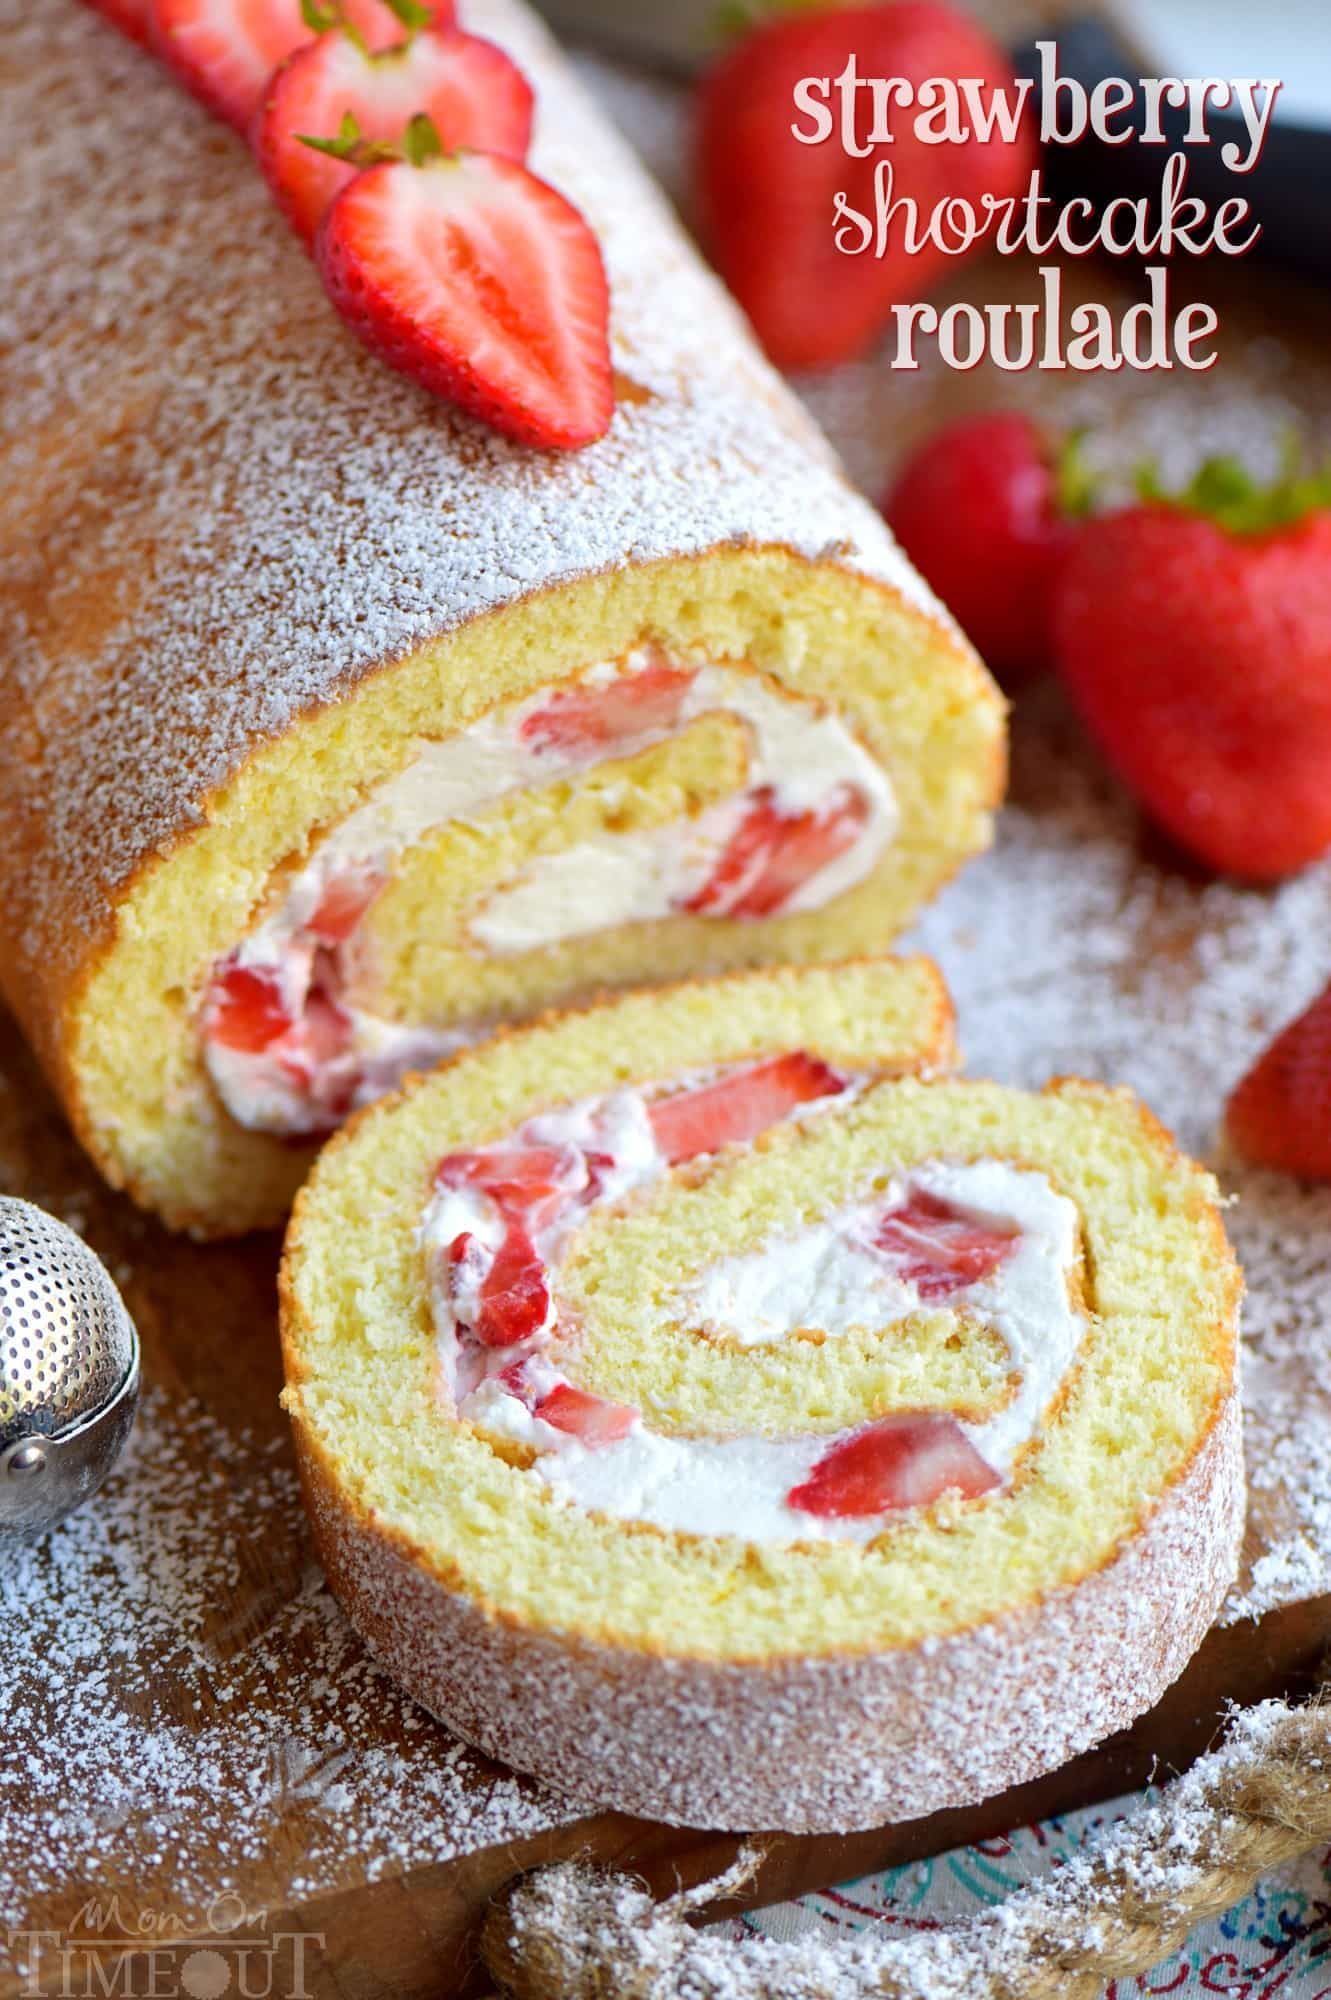 This Strawberry Shortcake Roulade is the quintessential summer dessert. Cake rolls are always stunning but this one is particularly so. Light and airy cake wrapped around a sweet whipped cream and fresh strawberry filling. Irresistible! // Mom On Timeout